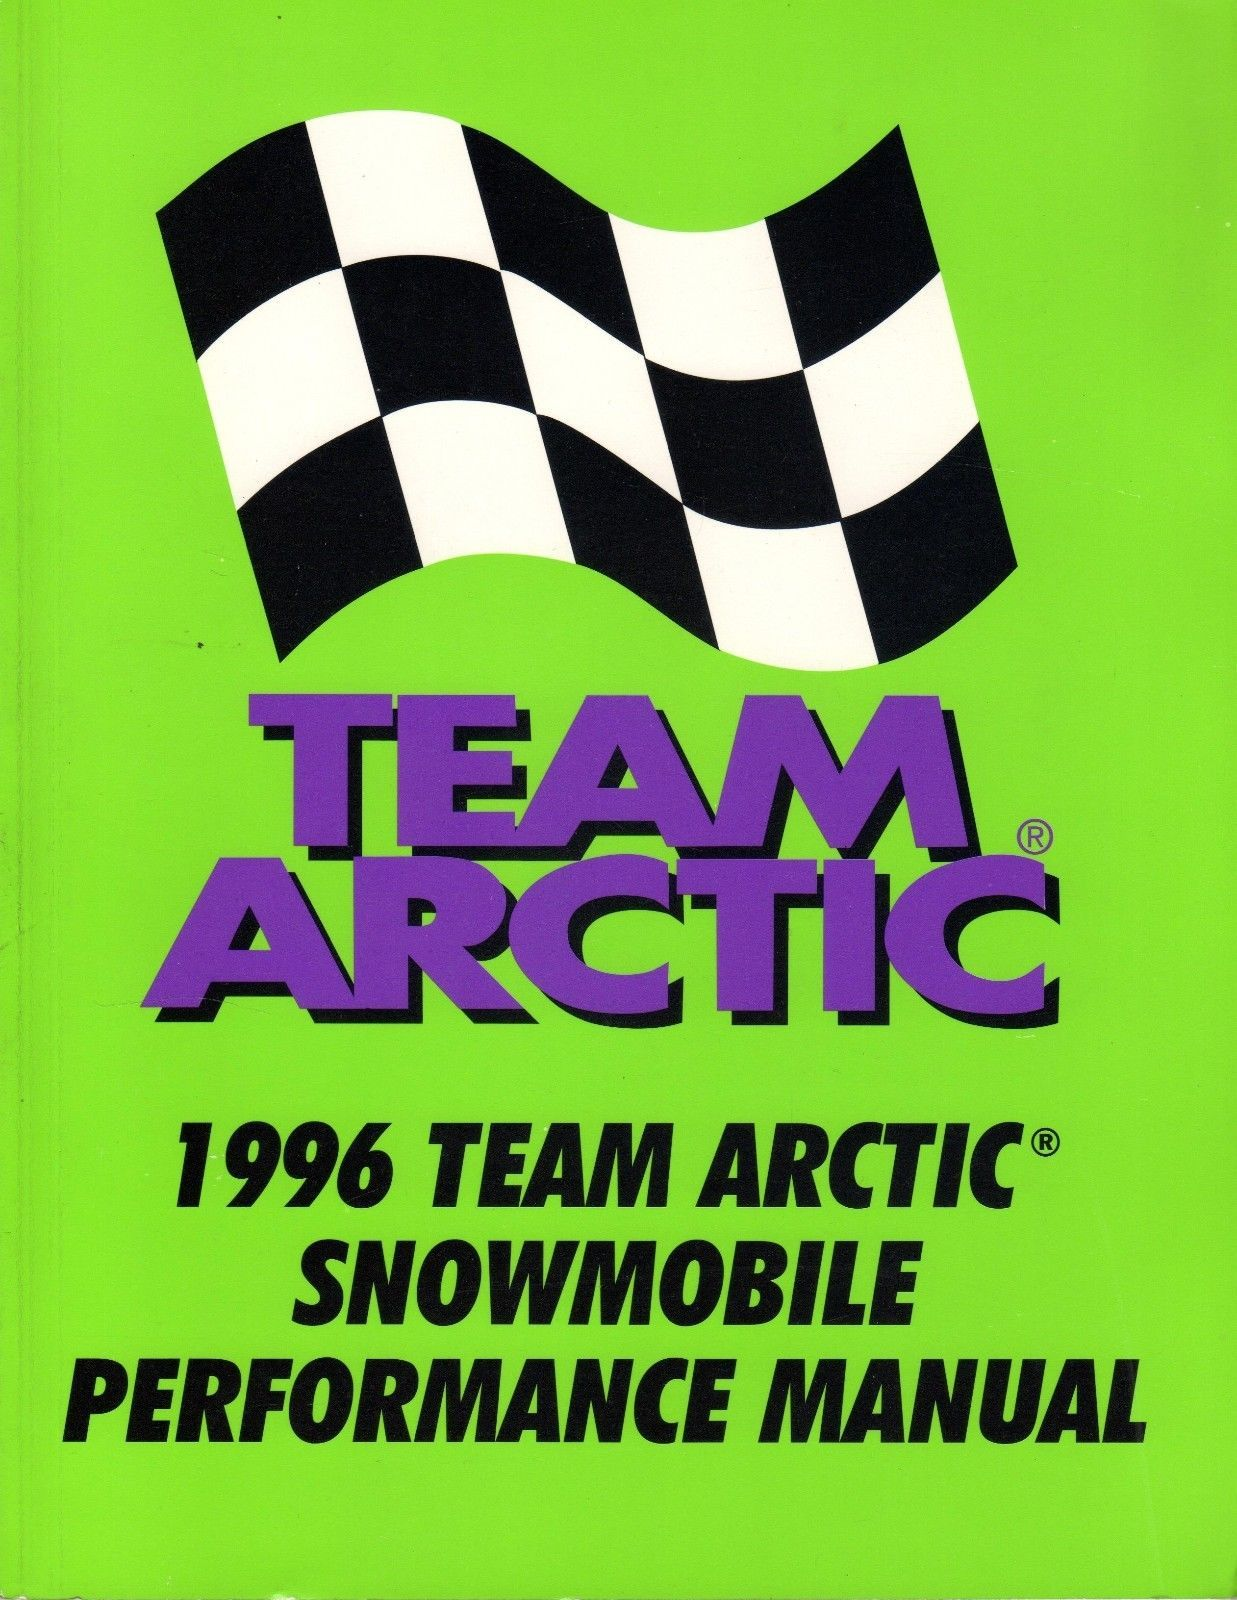 1996 ARCTIC CAT TEAM SNOWMOBILE PERFORMANCE SERVICE MANUAL P/N 2255-320 (150